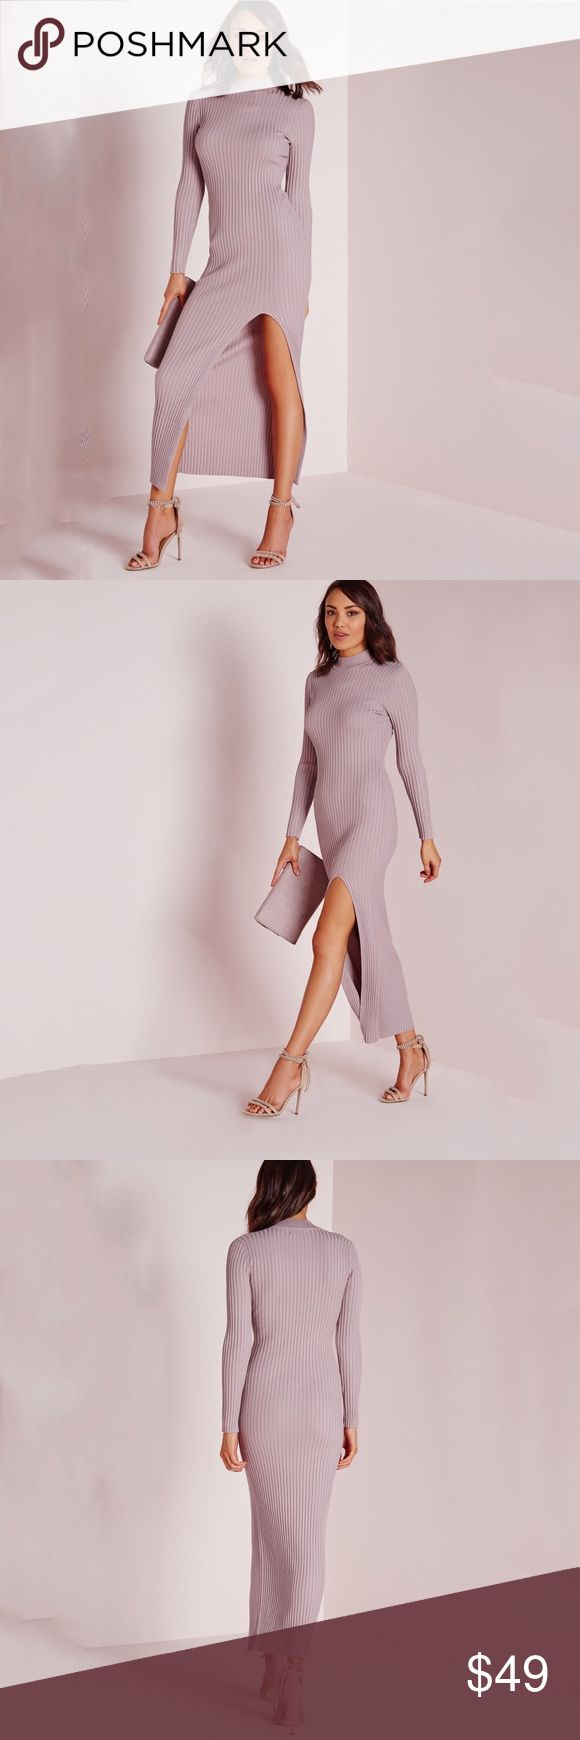 "Misguided Dusty Rose Slit Mock Neck Sweater Dress be a total dream in this lust-worthy knitted maxi dress with a ribbed finish for a super flattering fit. in a feminine mauve and high neck style and sexy split up the front, this is definitely a must have for every girl and we think it'll go great with some comfy heeled sandals and shoulder bag for a super chic finish.  • approx length 56""  • 100% viscose • size 2 (US) • new with tags and never worn misguided Dresses Midi"